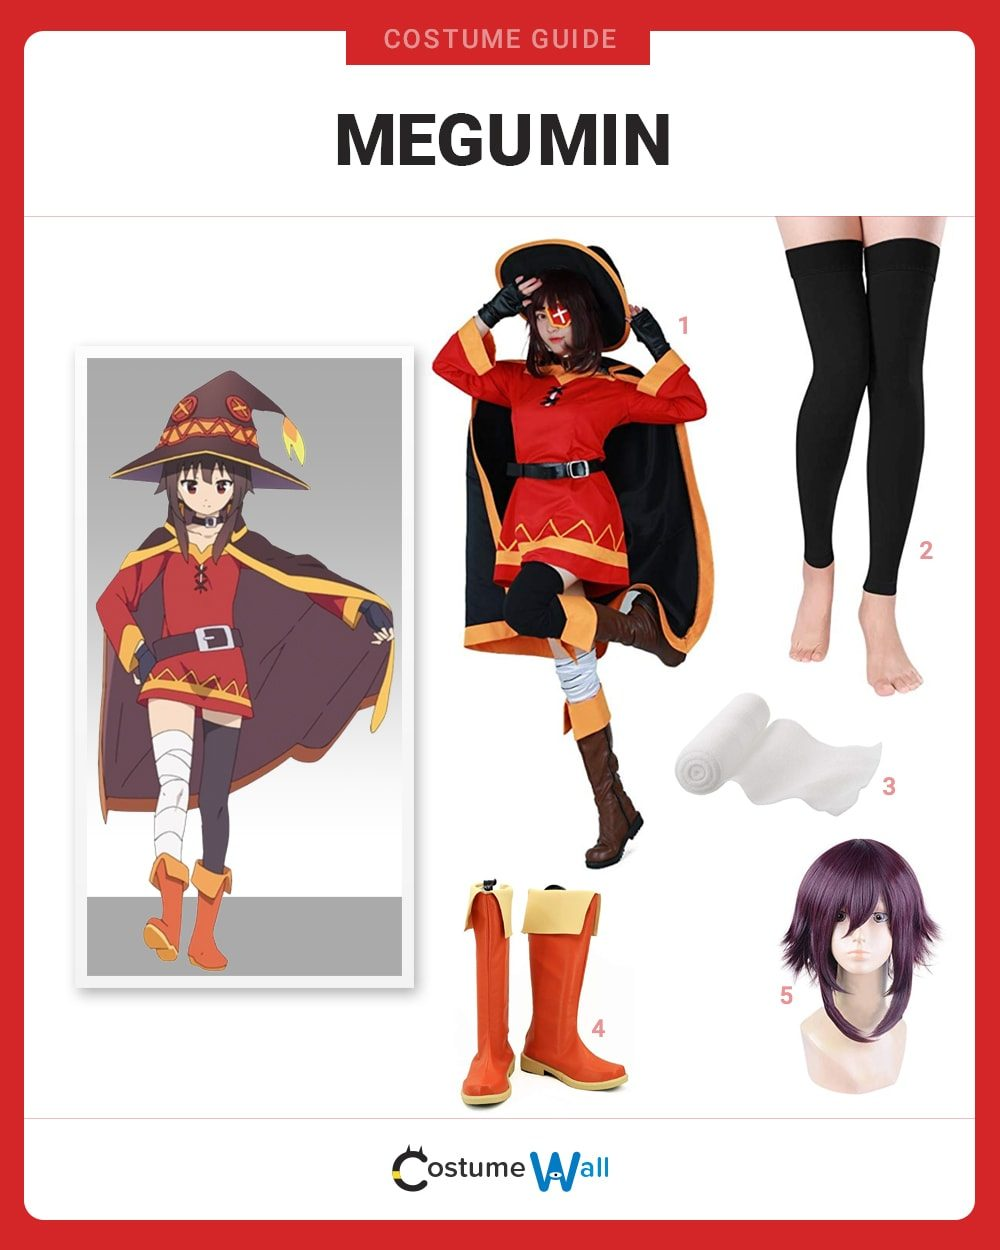 Megumin Costume Guide